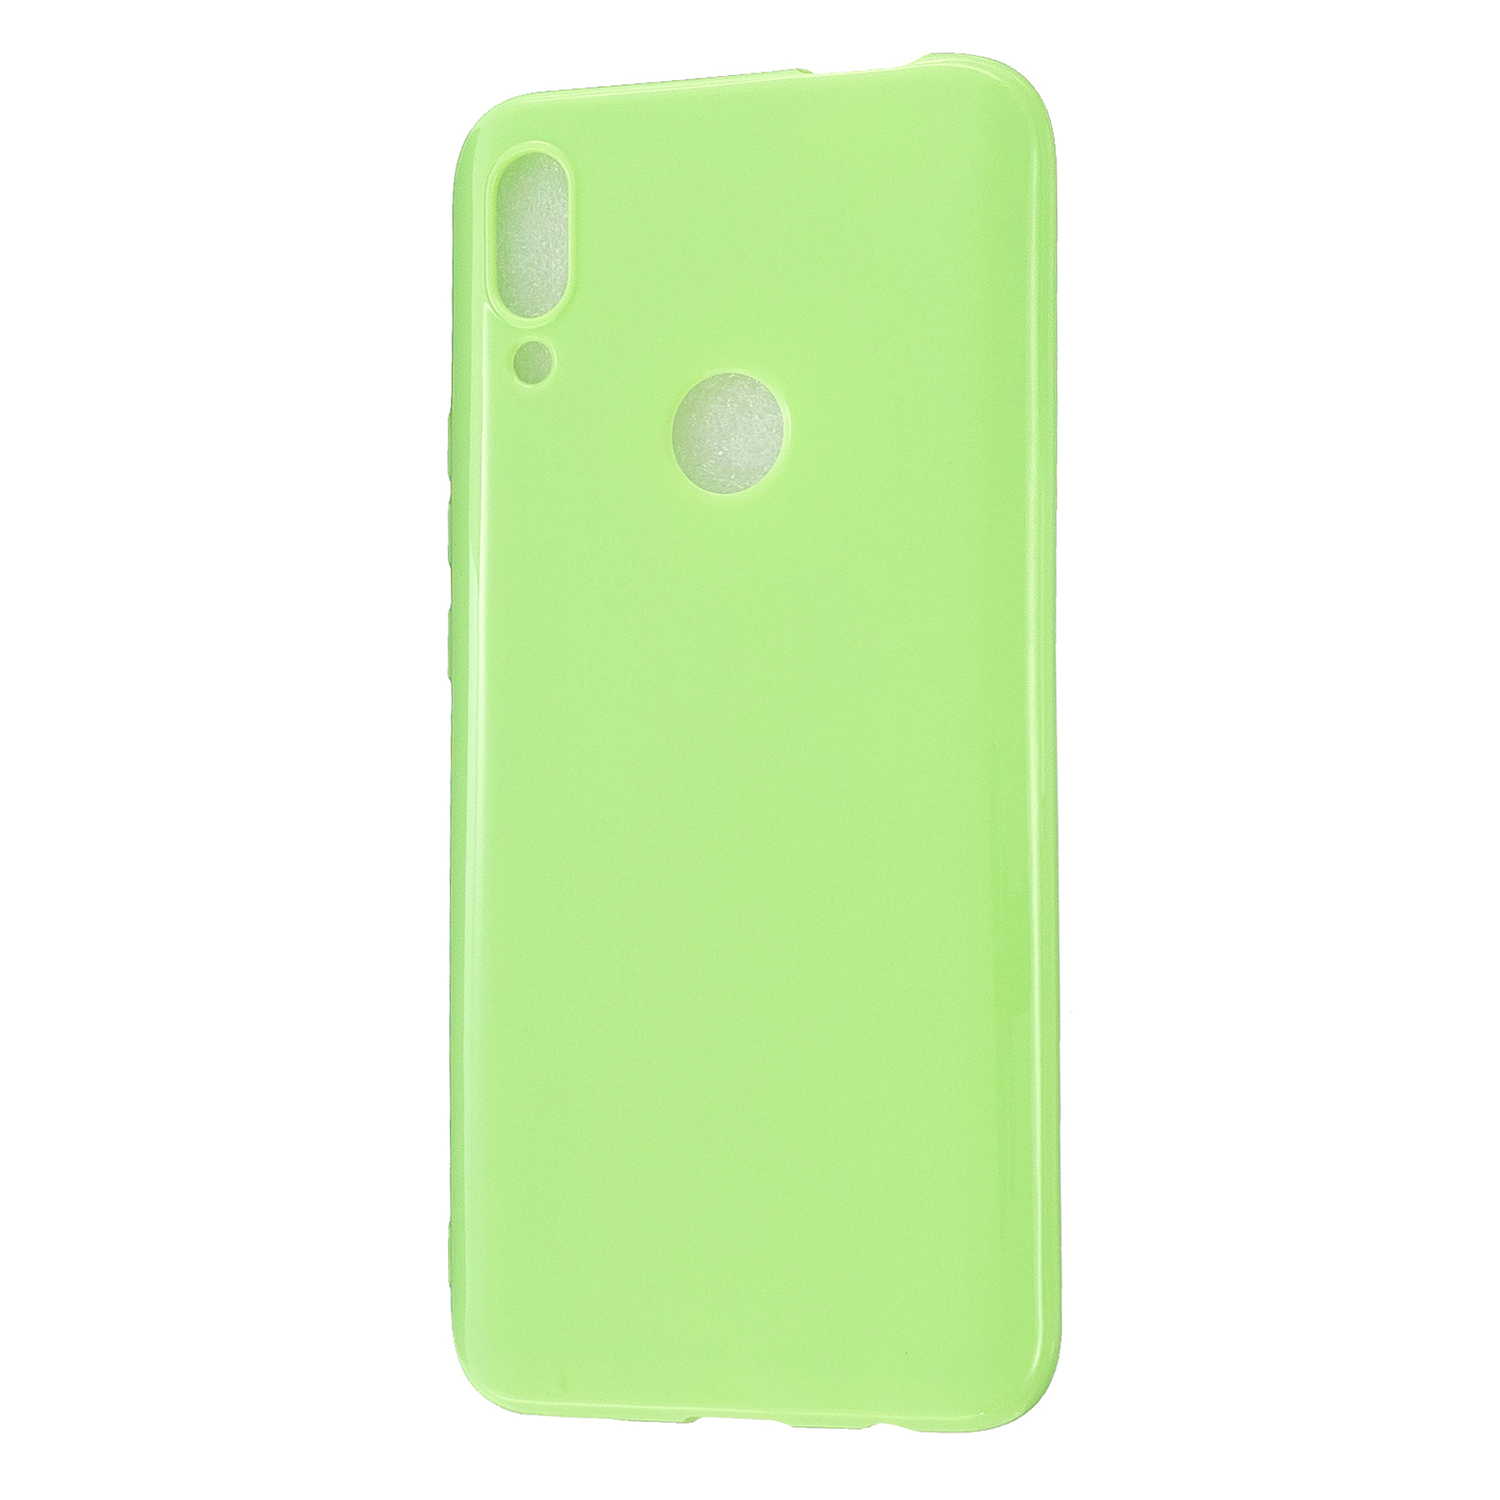 For HUAWEI Honor 10 Lite/P Smart/P Smart-Z 2019 Cellphone Shell Simple Profile Soft TPU Phone Case  Fluorescent green